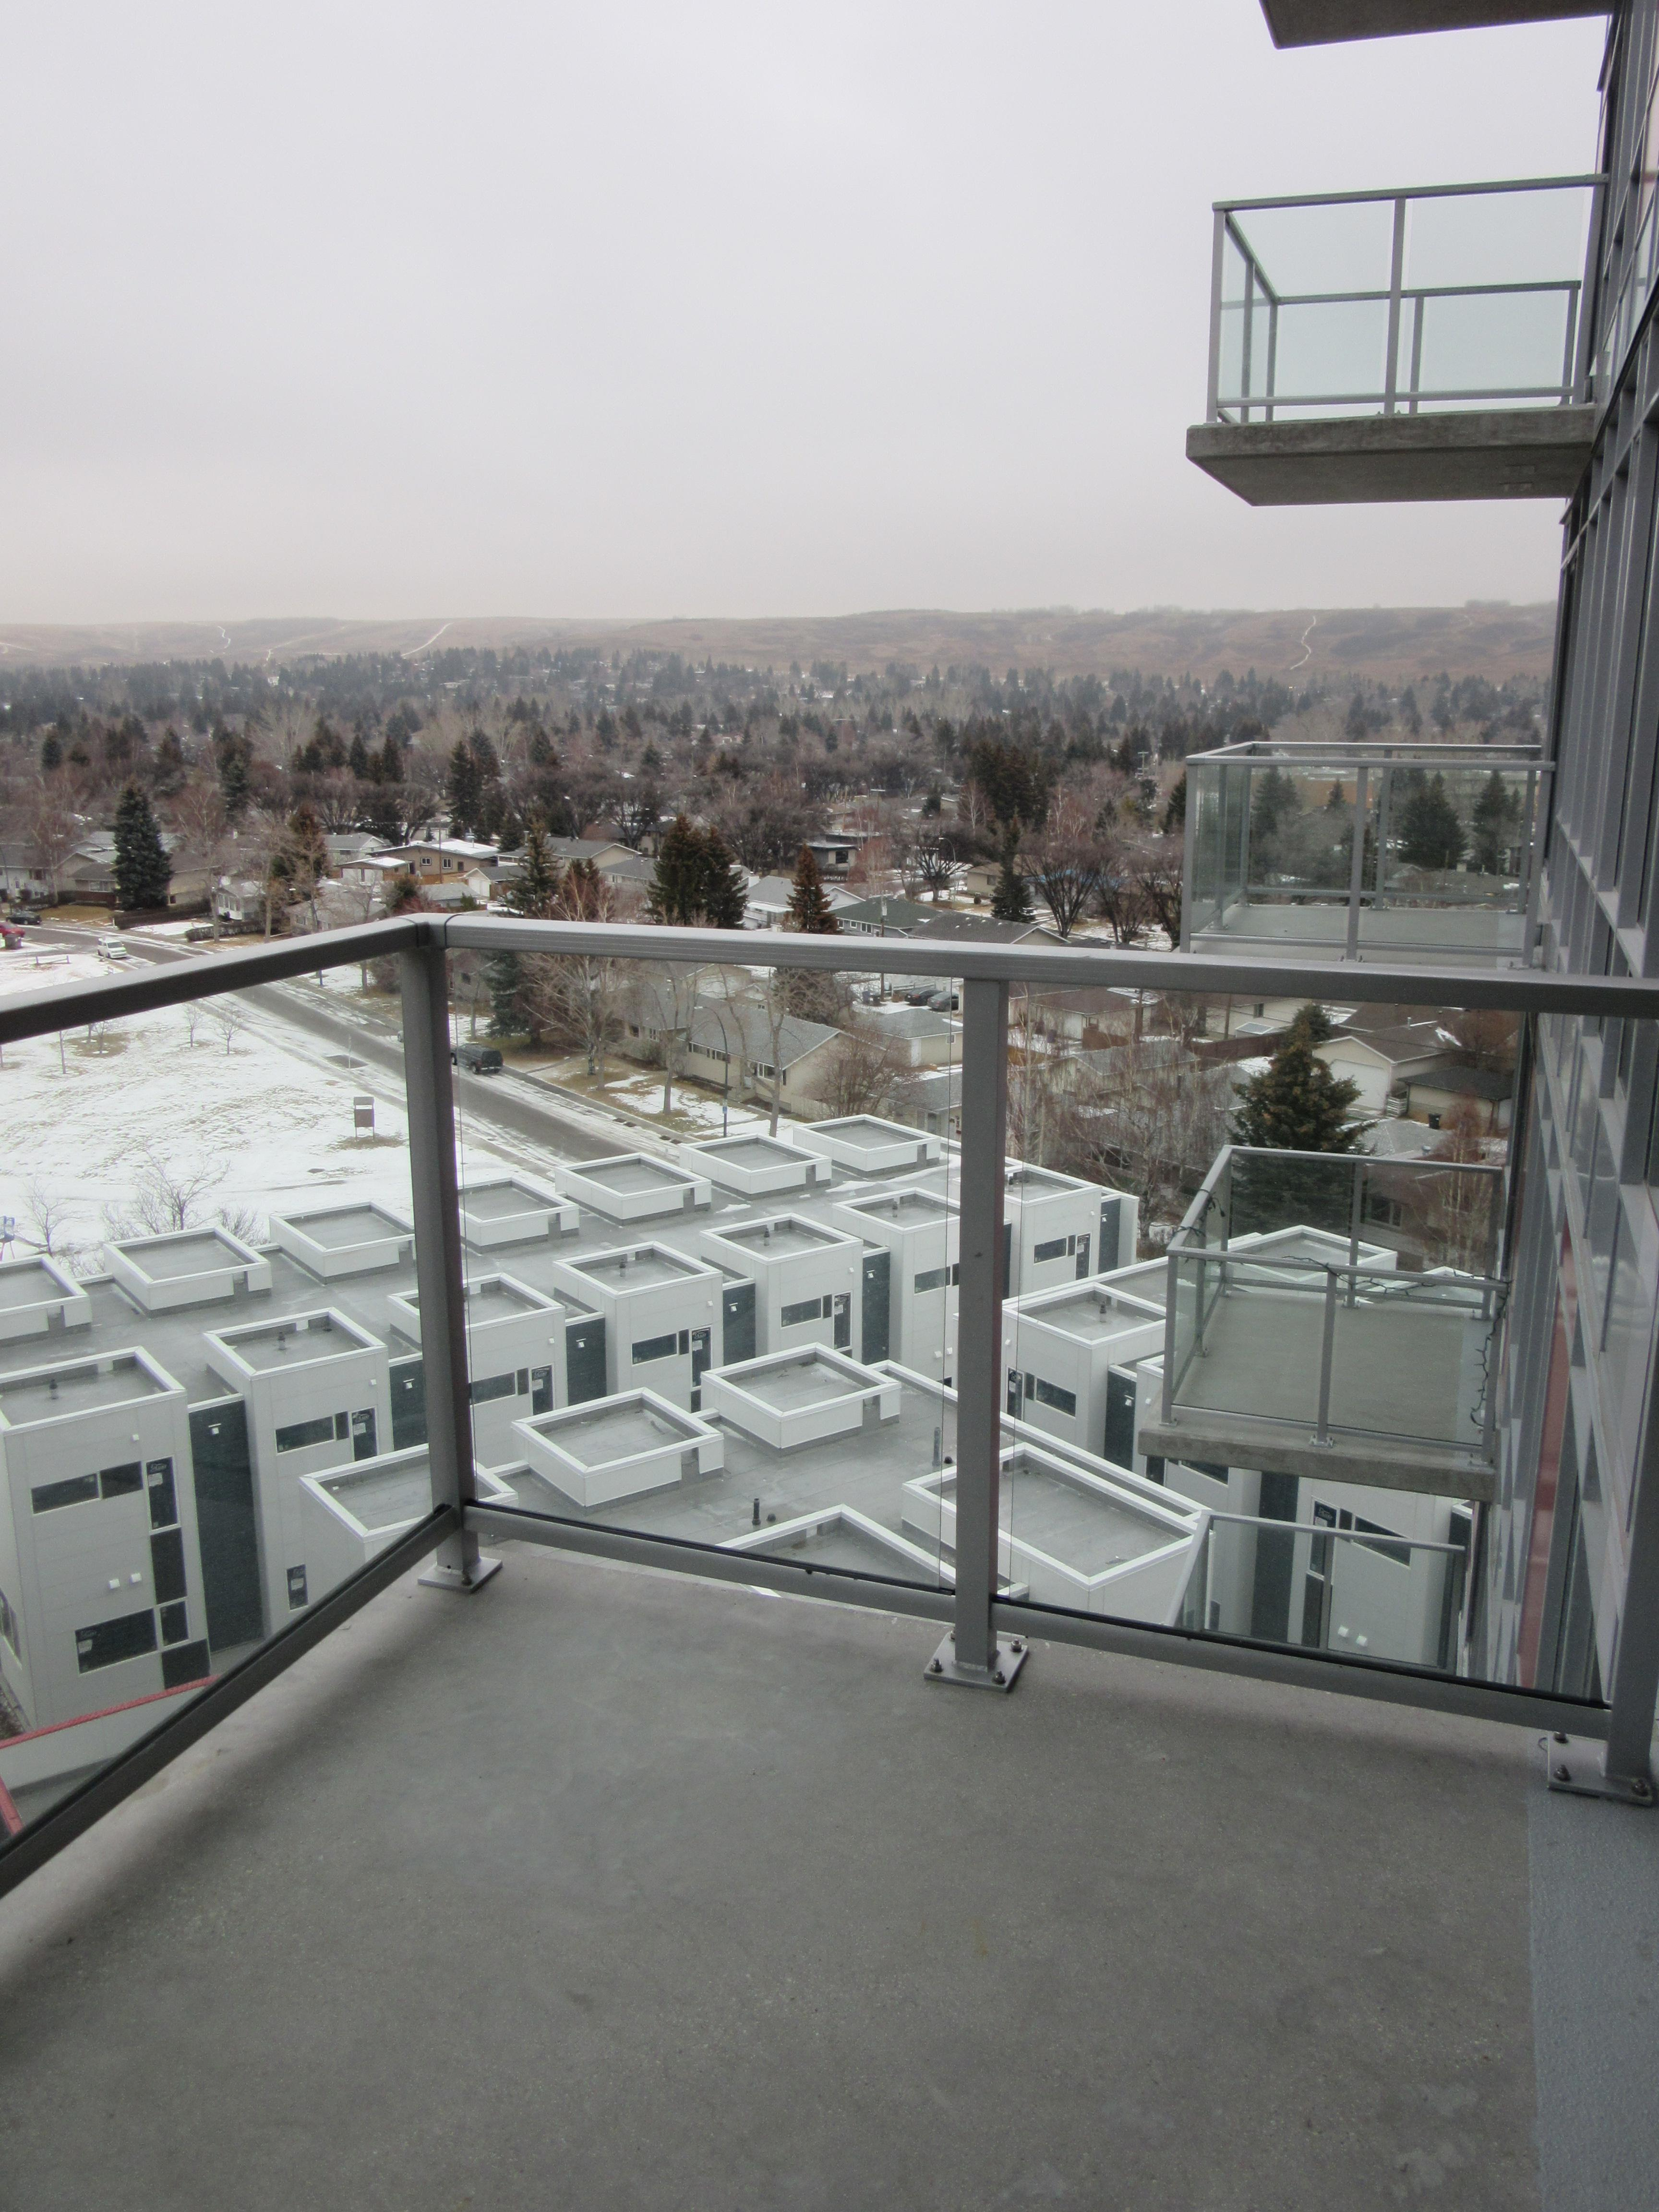 911, 10 Brentwood Common NW, Calgary, Alberta T2L 2L6, 2 Bedrooms Bedrooms, ,1 BathroomBathrooms,Condo,For Rent,Brentwood Common NW,911,1117